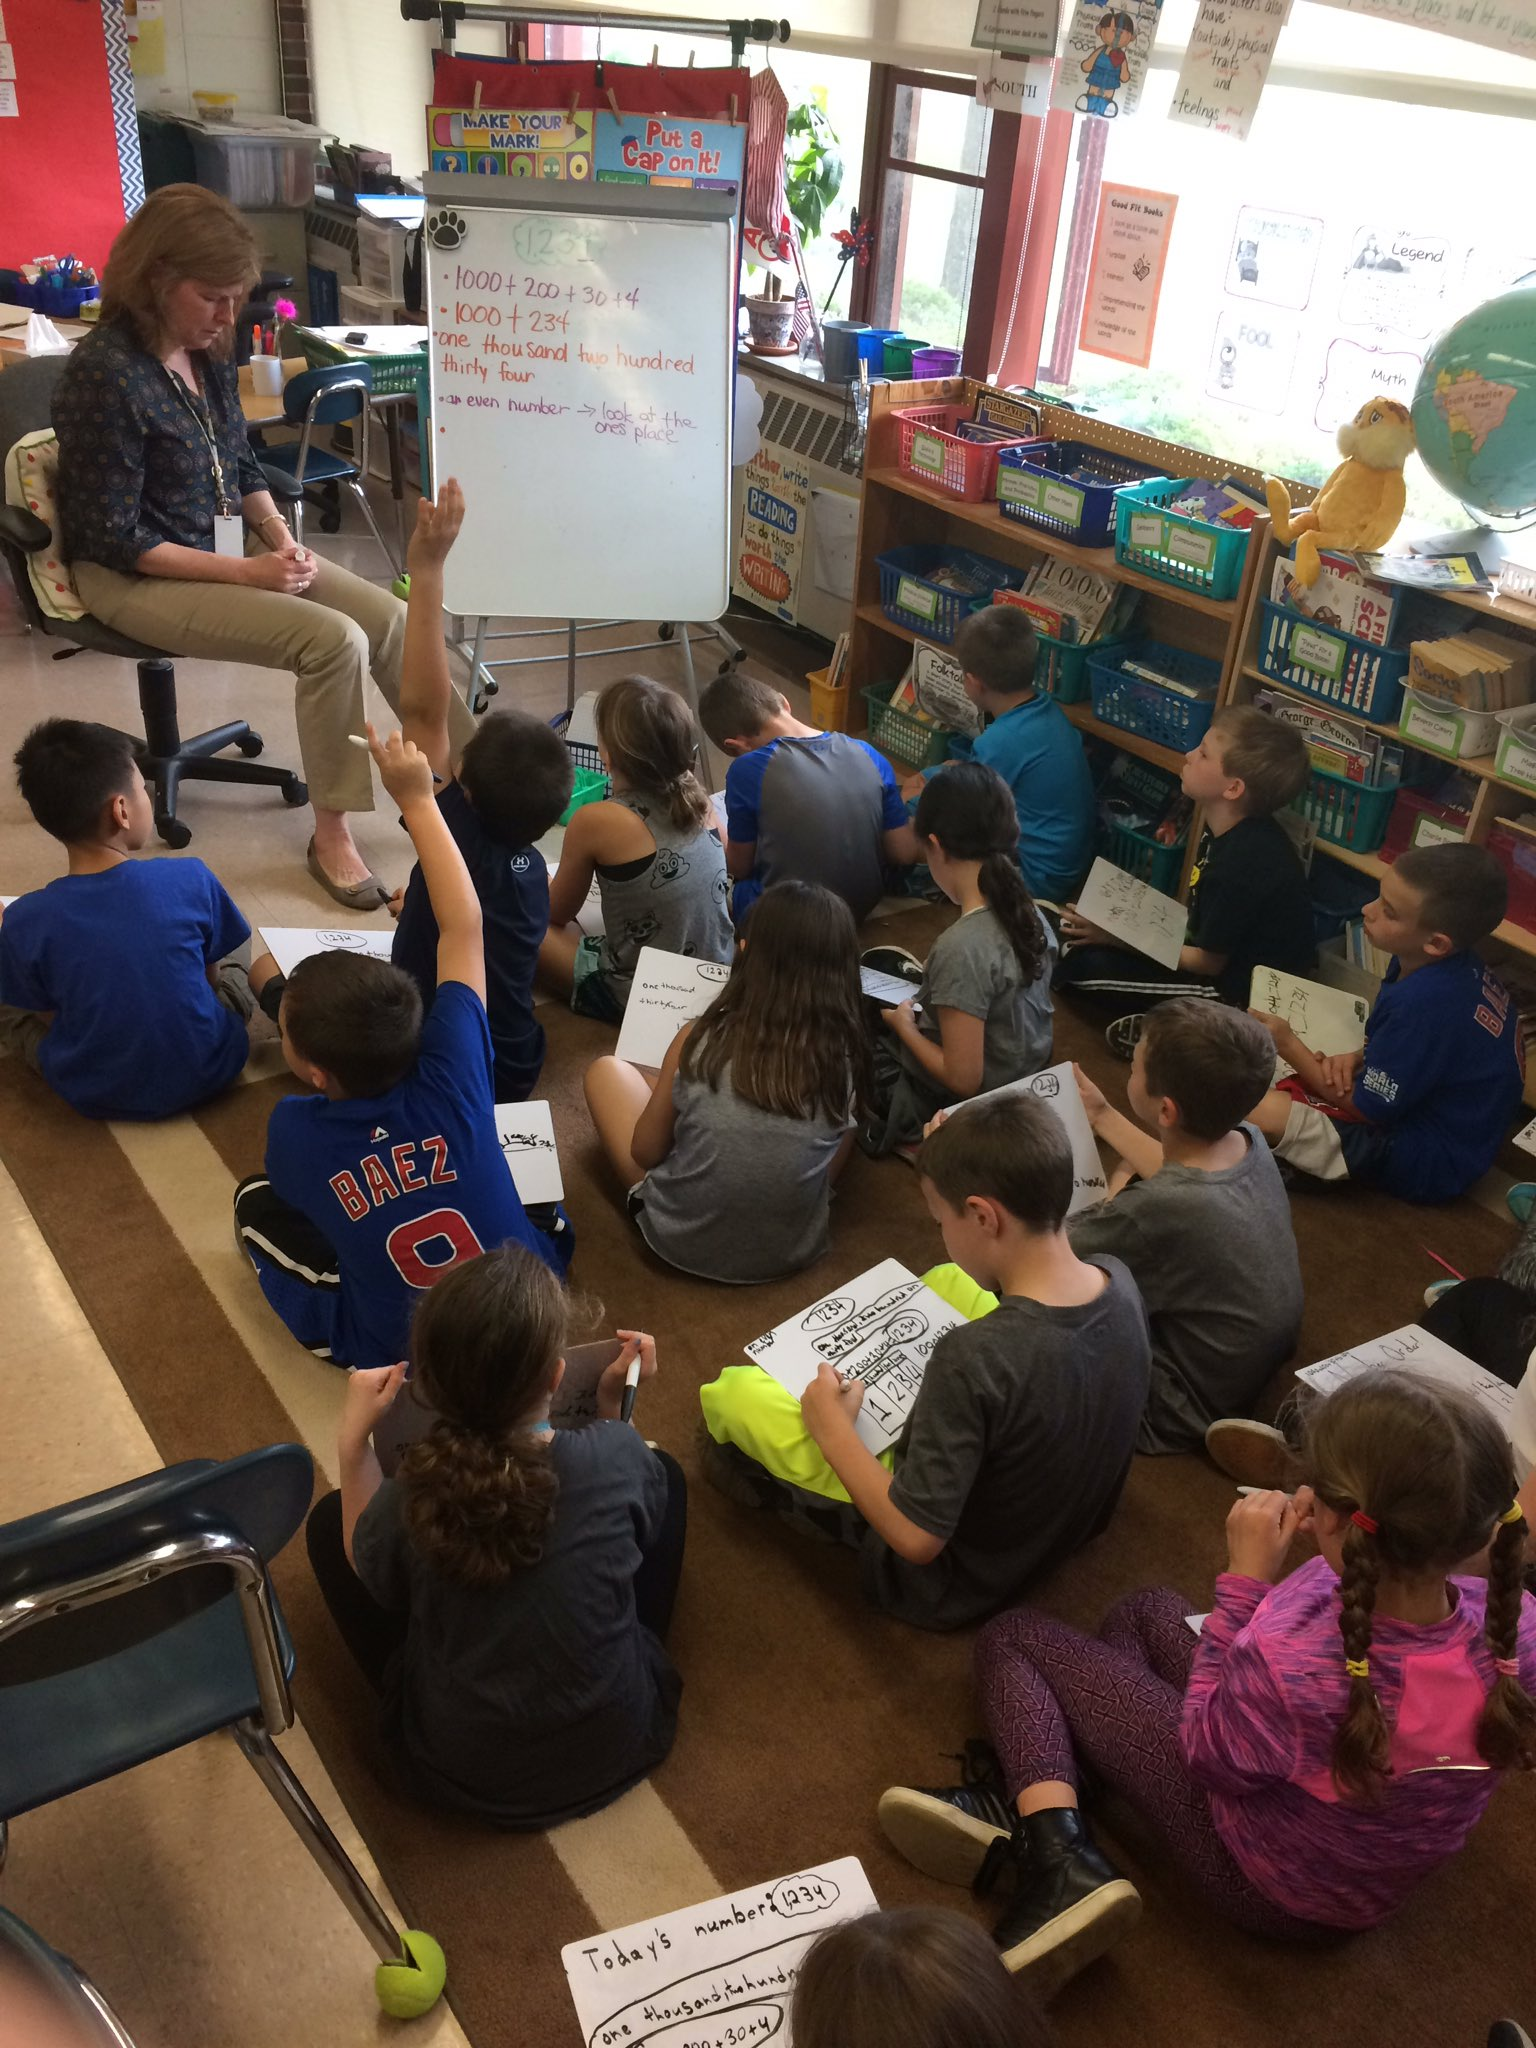 @m_ddoherty 's 3rd grade mathematicians share their thinking with the Today's number routine! #engage109 #sp109 https://t.co/3StLJMBkgR